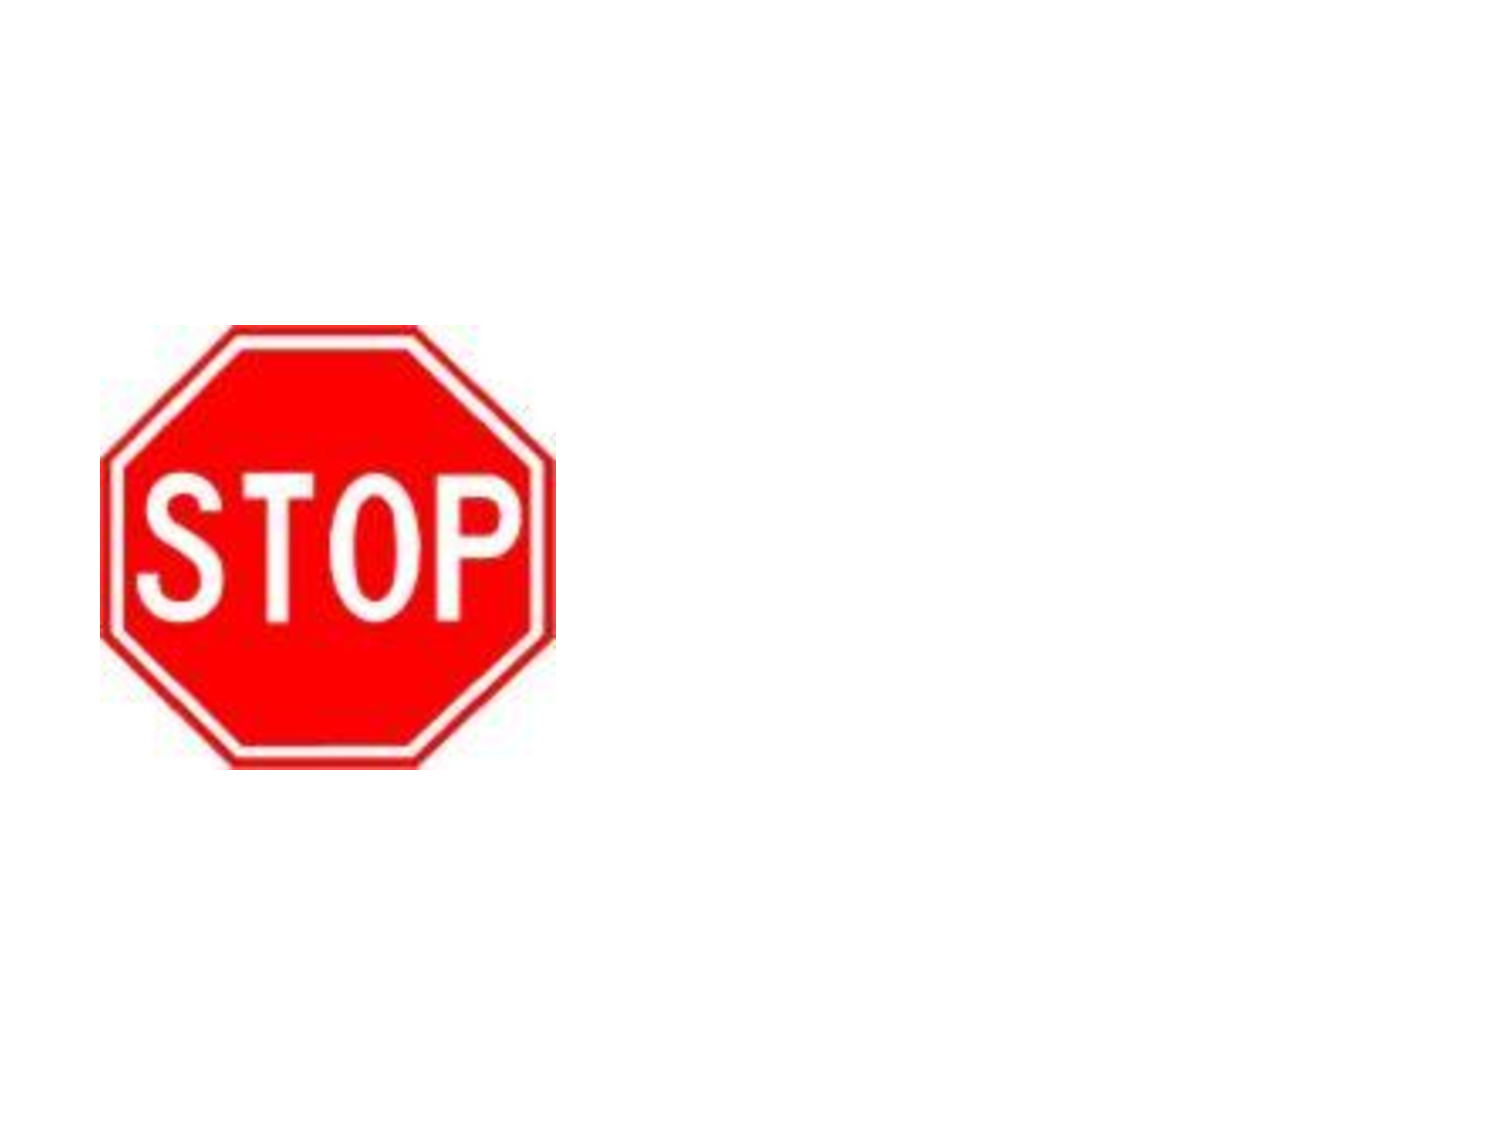 Printable stop sign clip art clipart download.